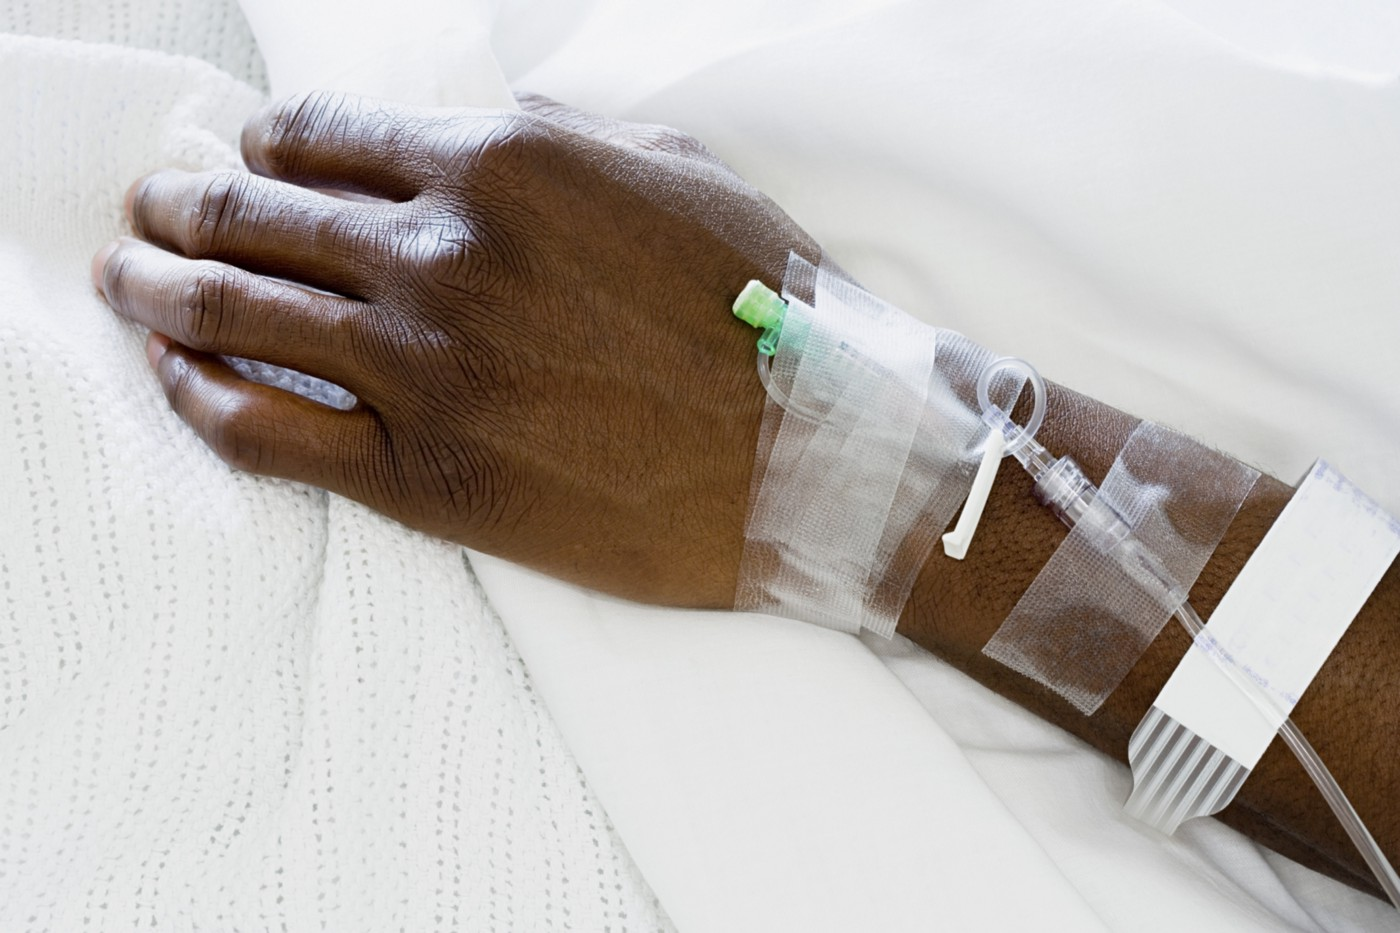 Closeup of hand of a patient at hospital with IV drip.